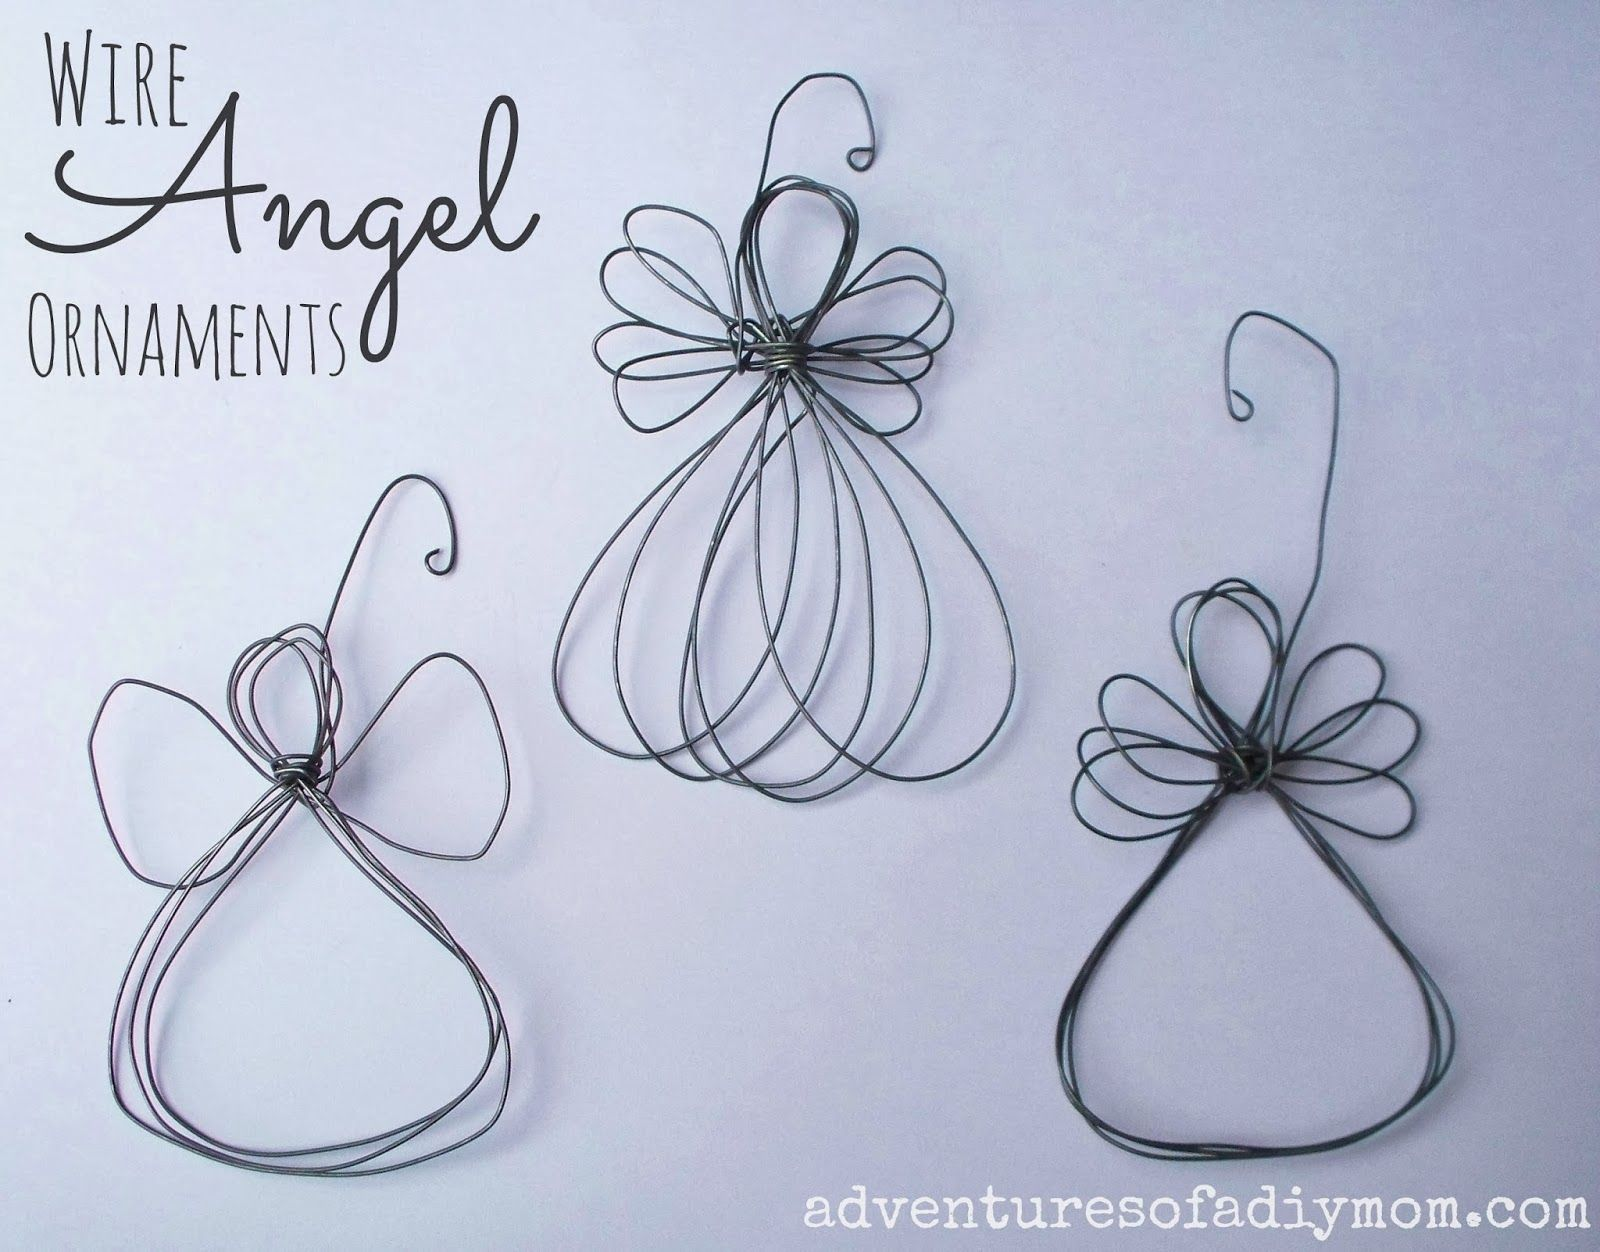 How To Make A Wire Angel Ornament Nativity Ornament Series Diy Christmas Ornaments Christmas Crafts Christmas Angels